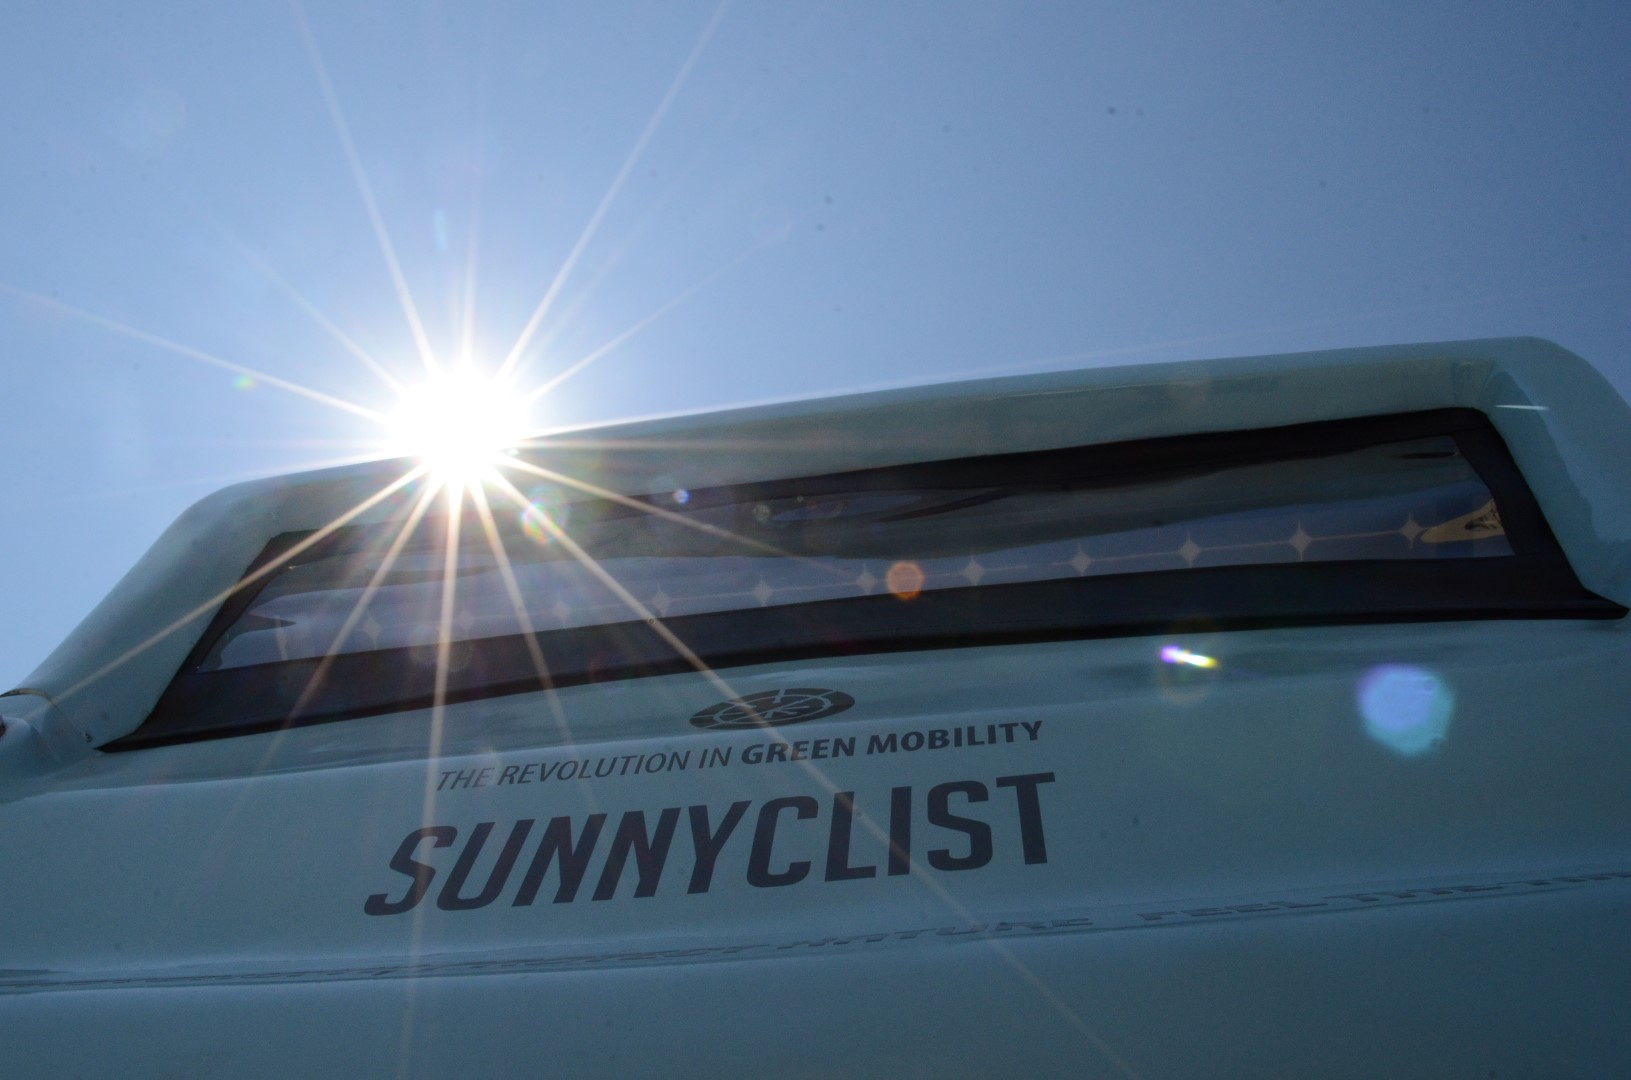 Sunnyclist Hybrid electro solar green vehicle